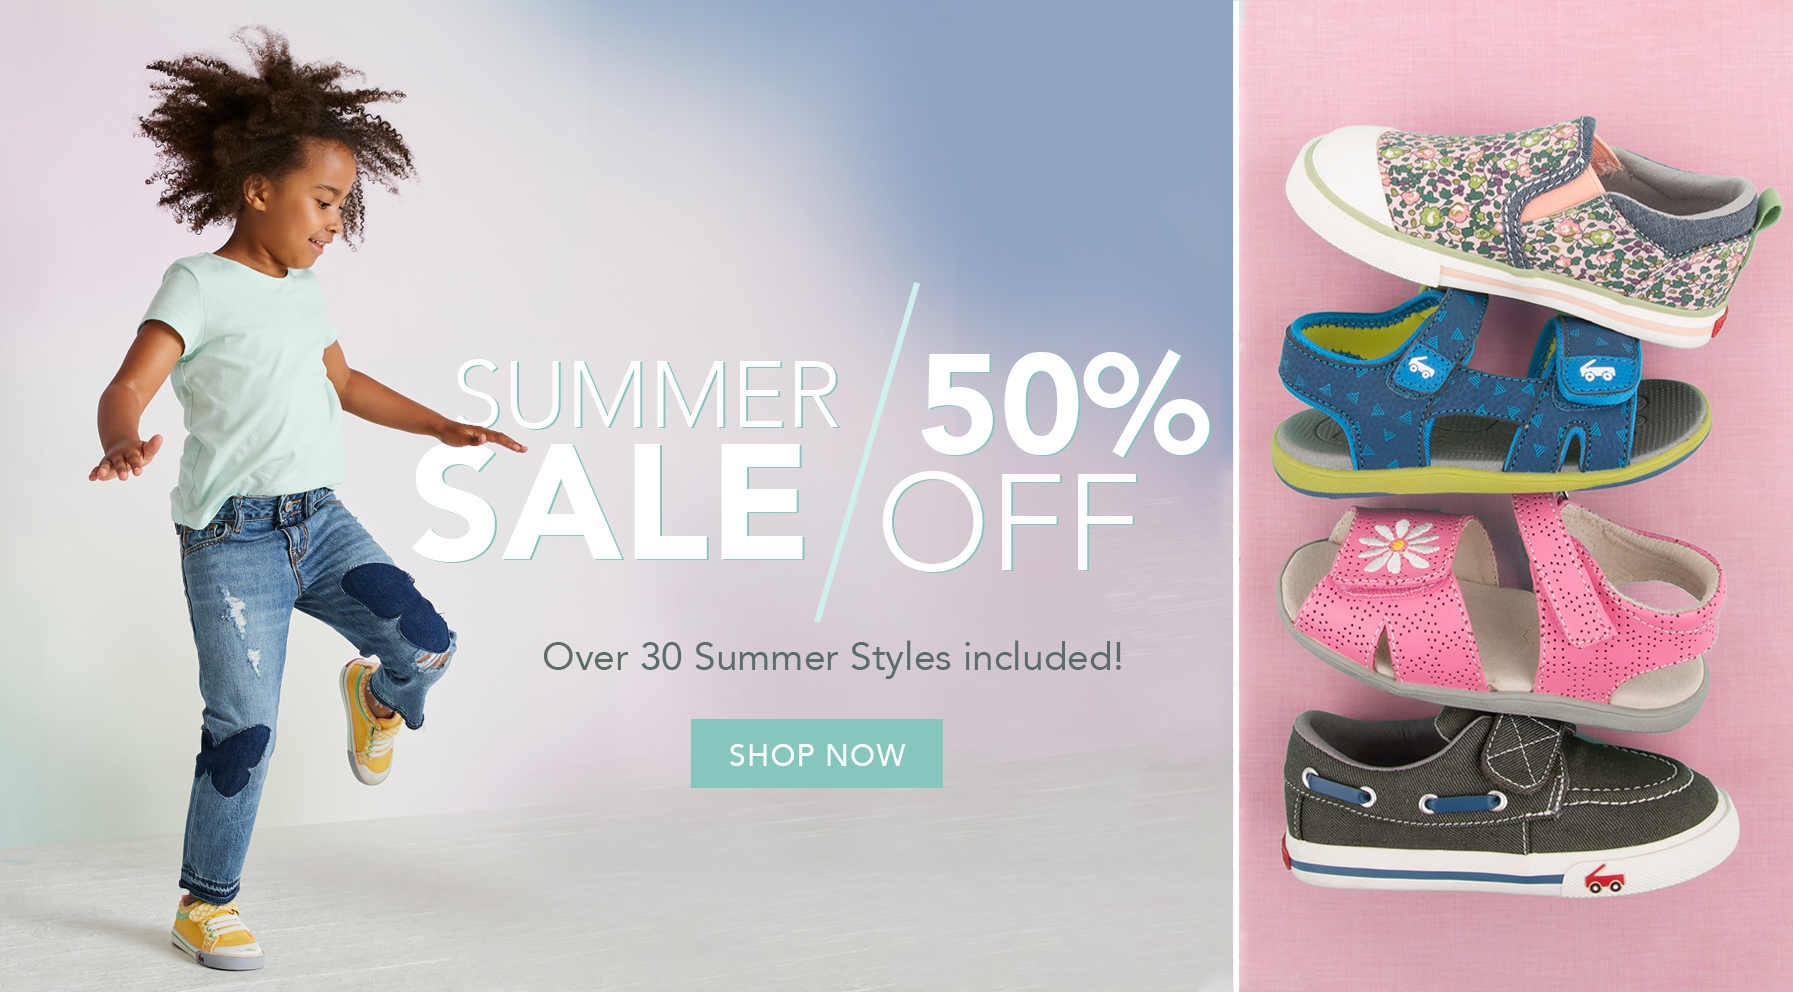 Summer sale 50% off. Over 30 Summer styles included! Shop Now